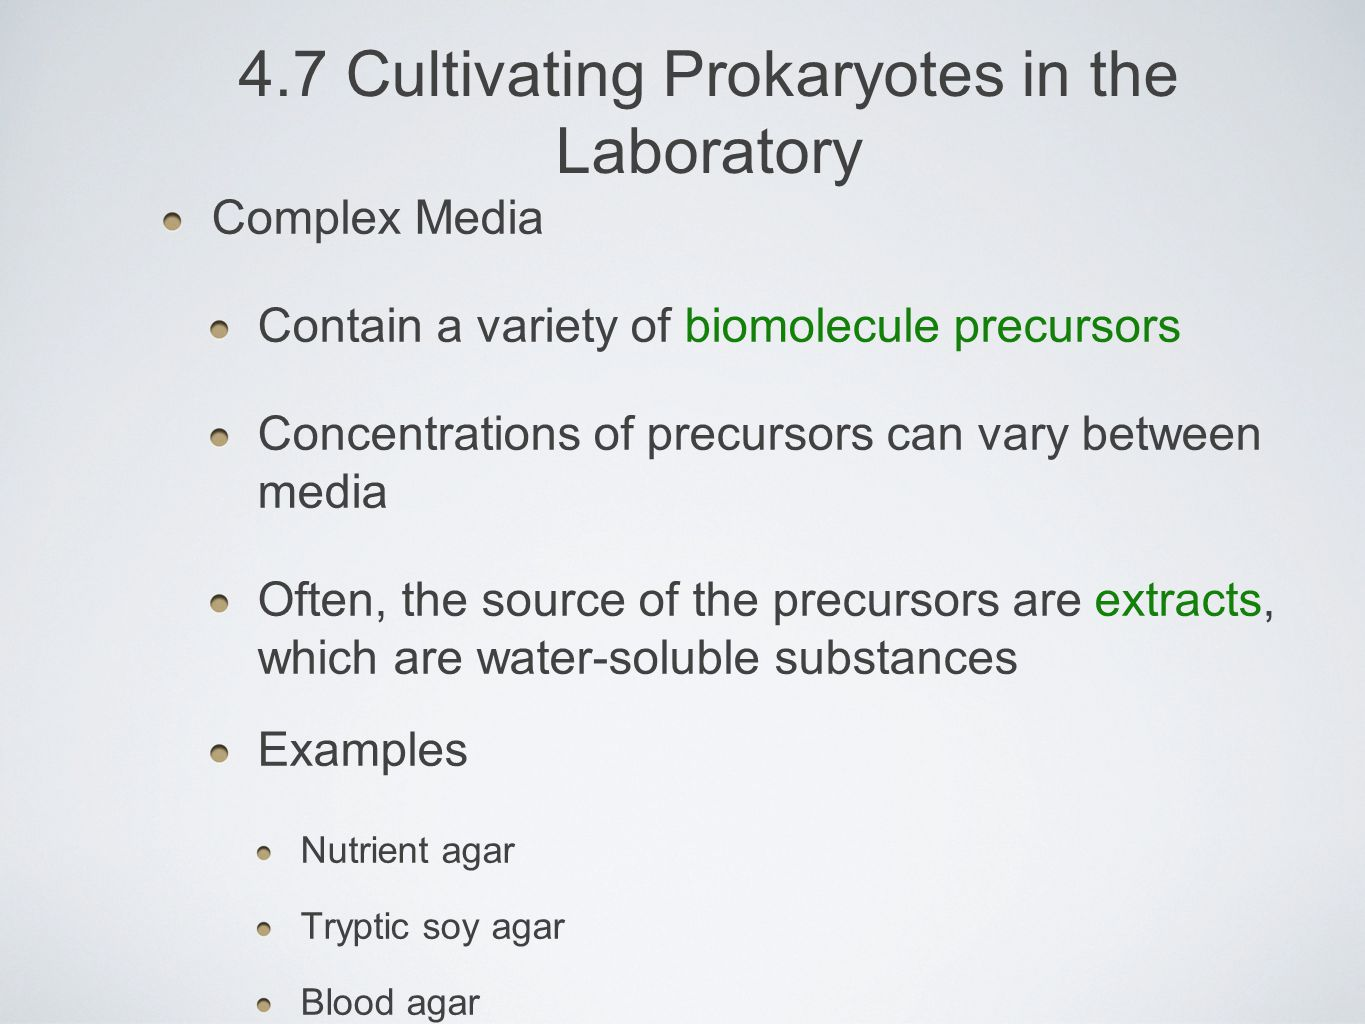 4.7 Cultivating Prokaryotes in the Laboratory